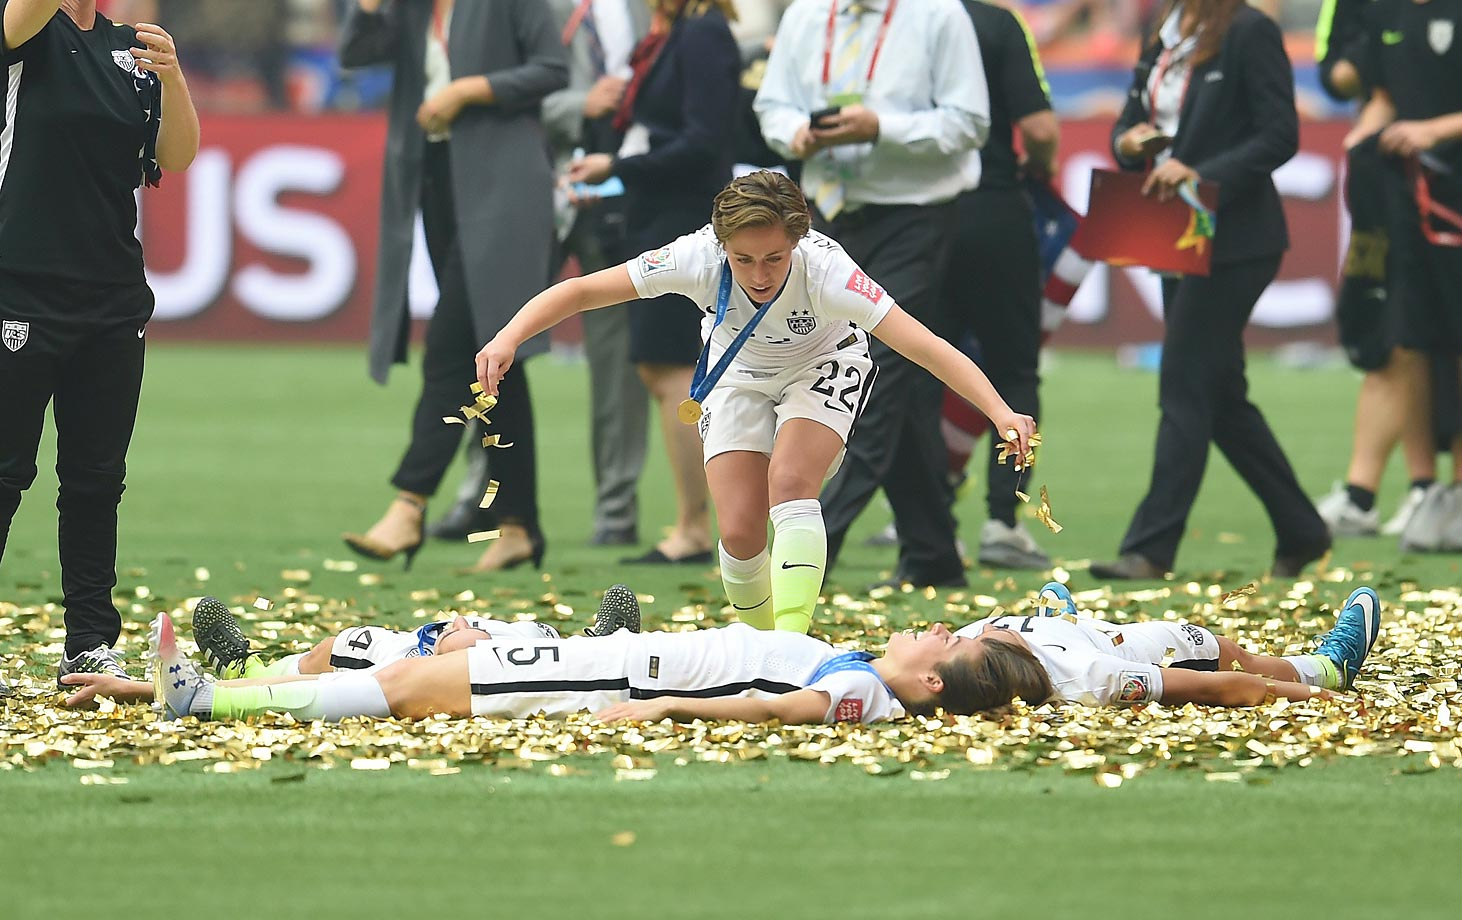 The U.S. women celebrate their 5-2 World Cup victory over Japan.